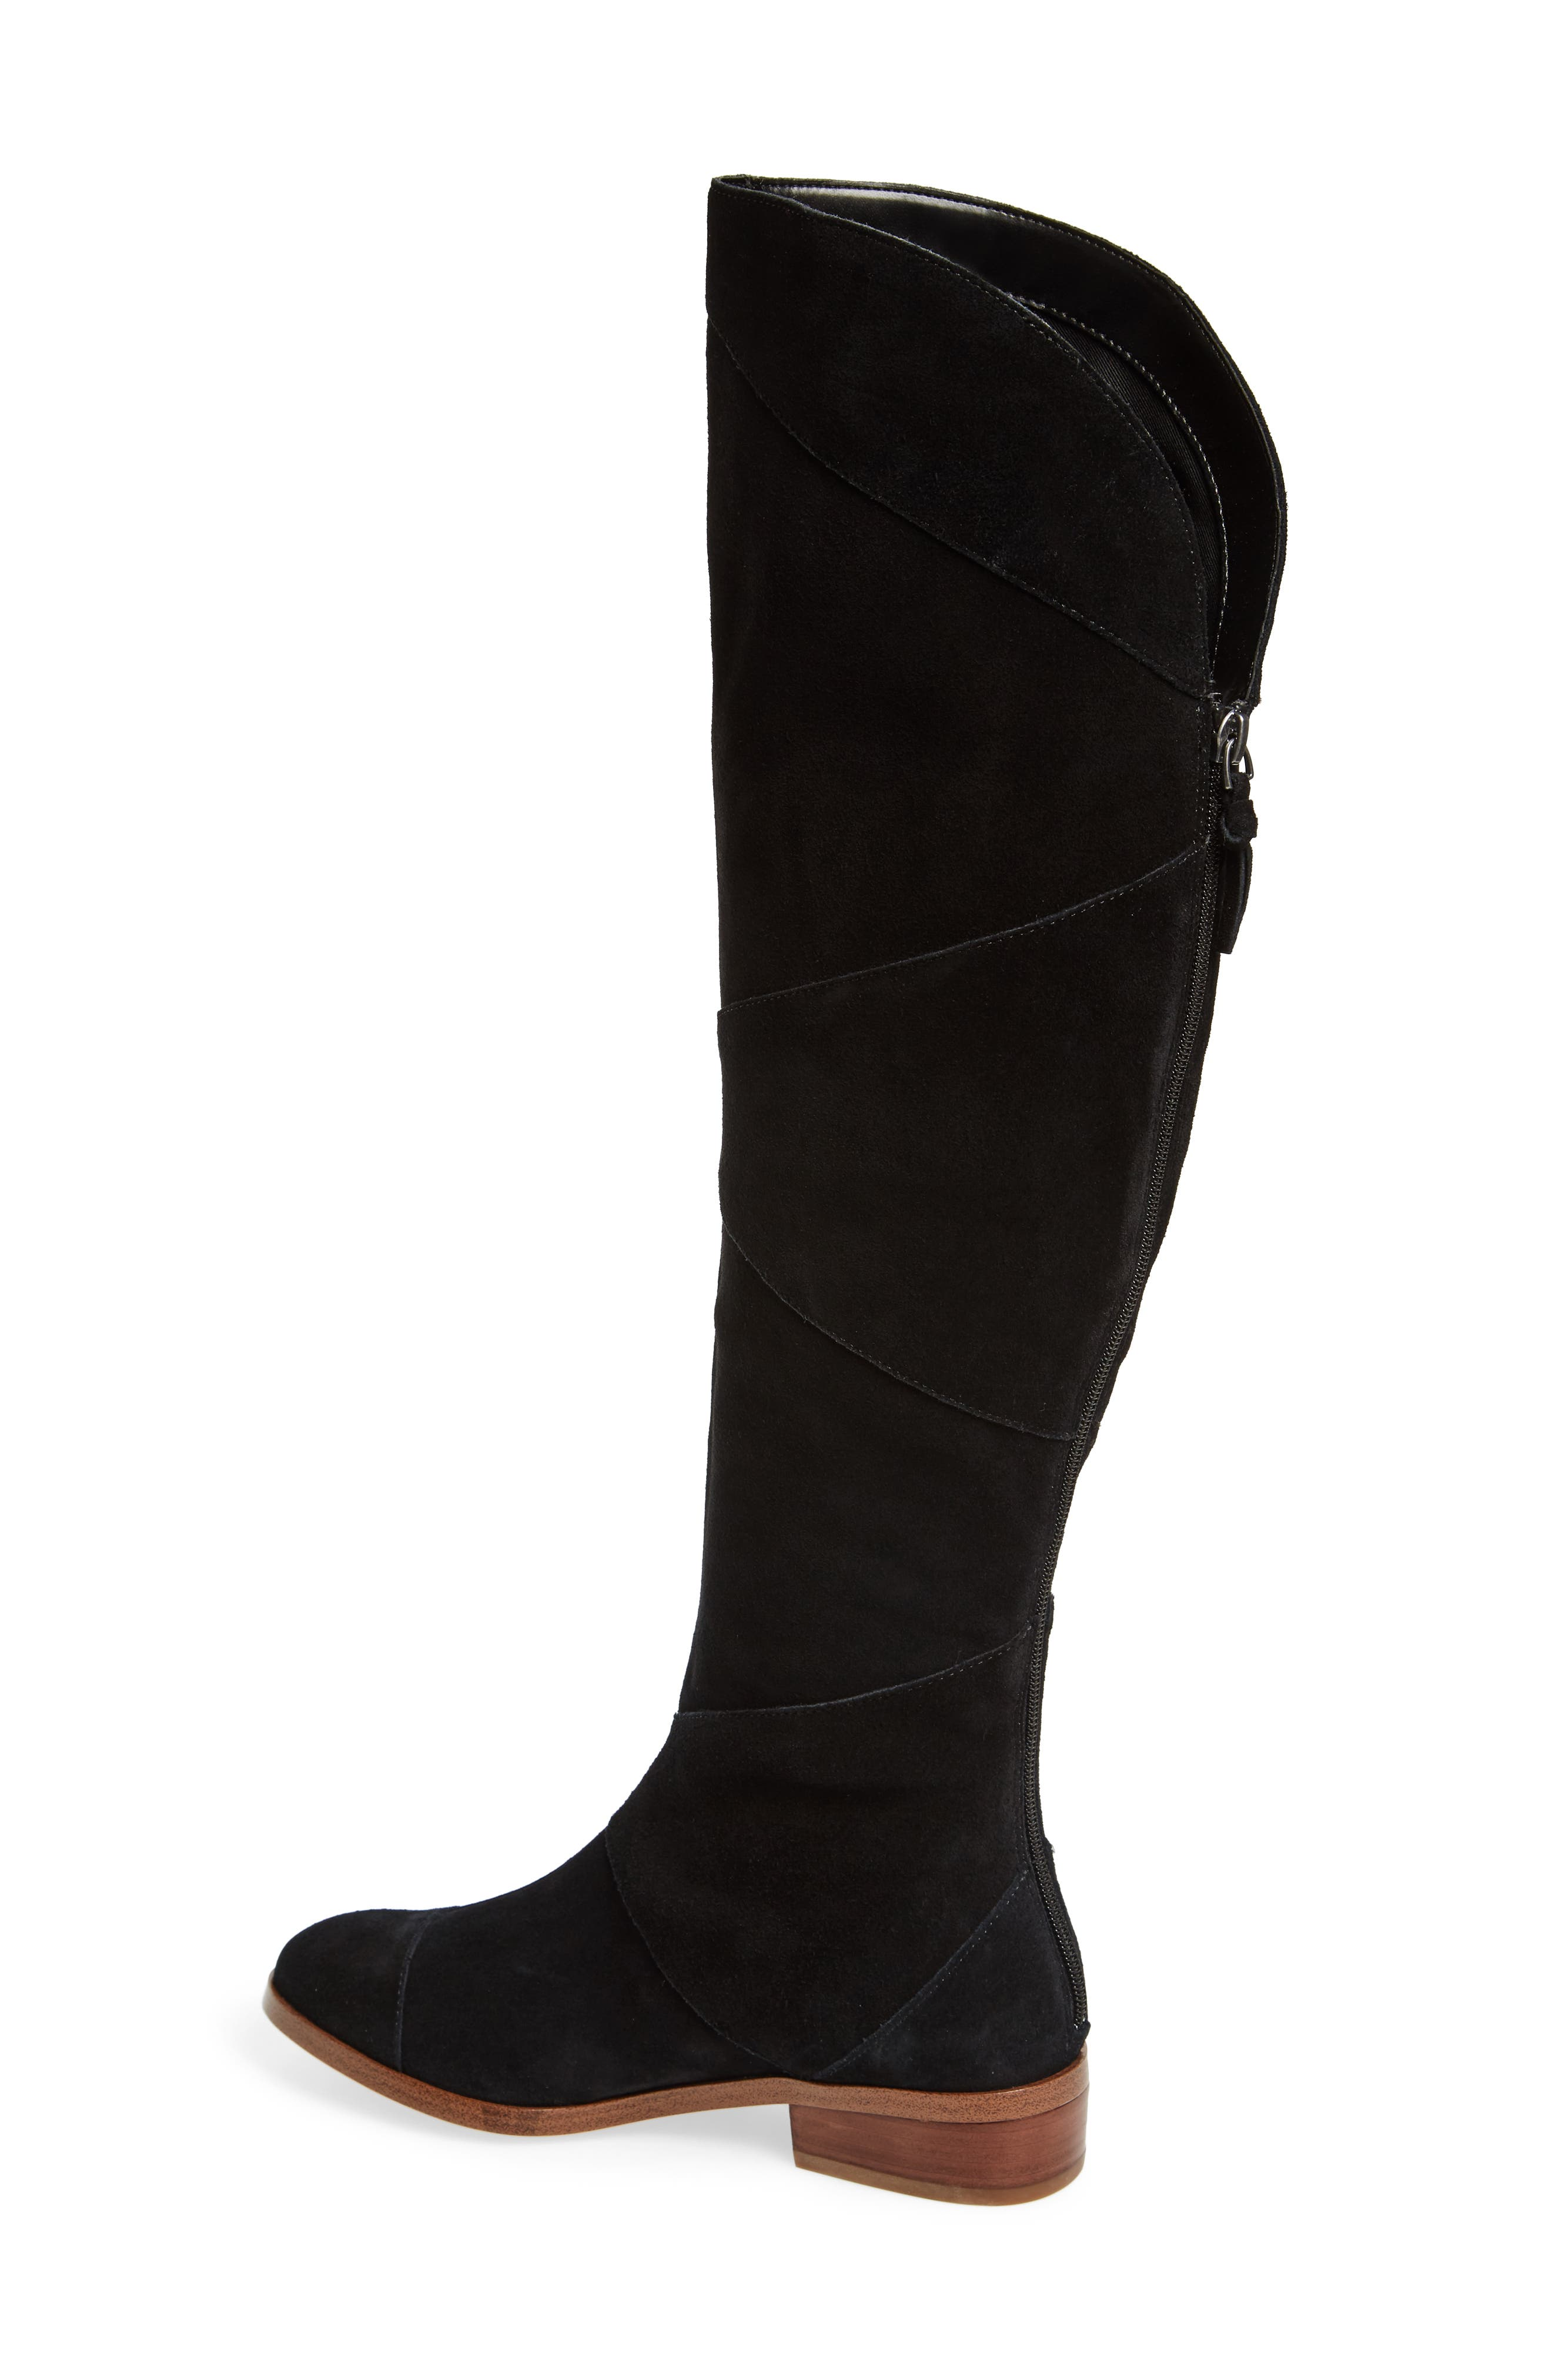 Tiff Over the Knee Boot,                             Alternate thumbnail 2, color,                             BLACK